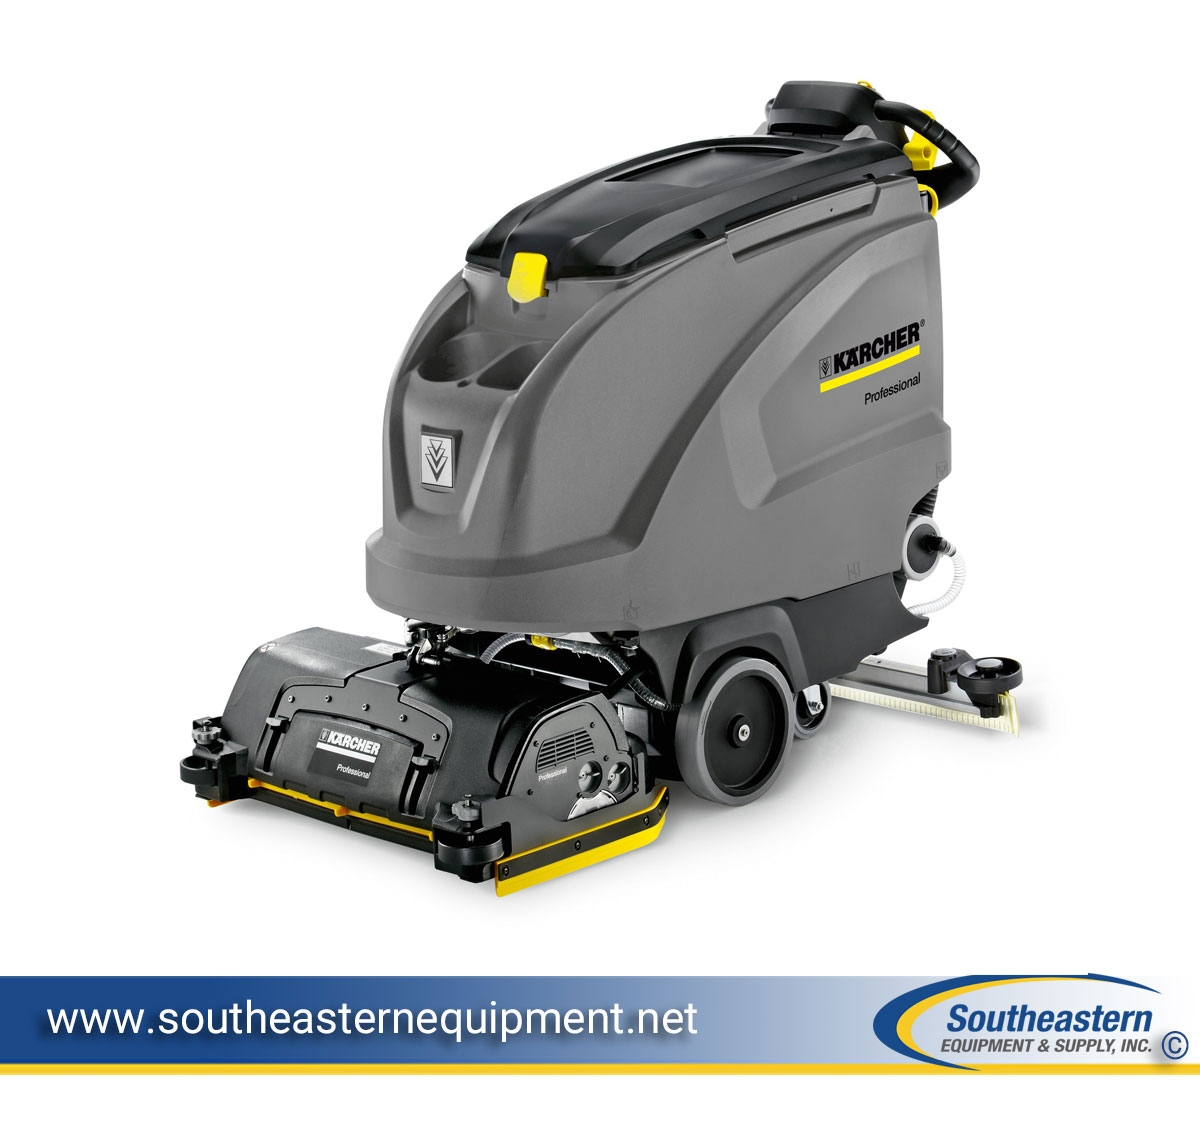 mafloor full repair troubleshooting floorrubber floors for boston ideasrubbers scrubbers commercial rental indianapolis chicago atlanta sale magnificent of concept minuteman walmart pictures scrubber cordless size machine floor